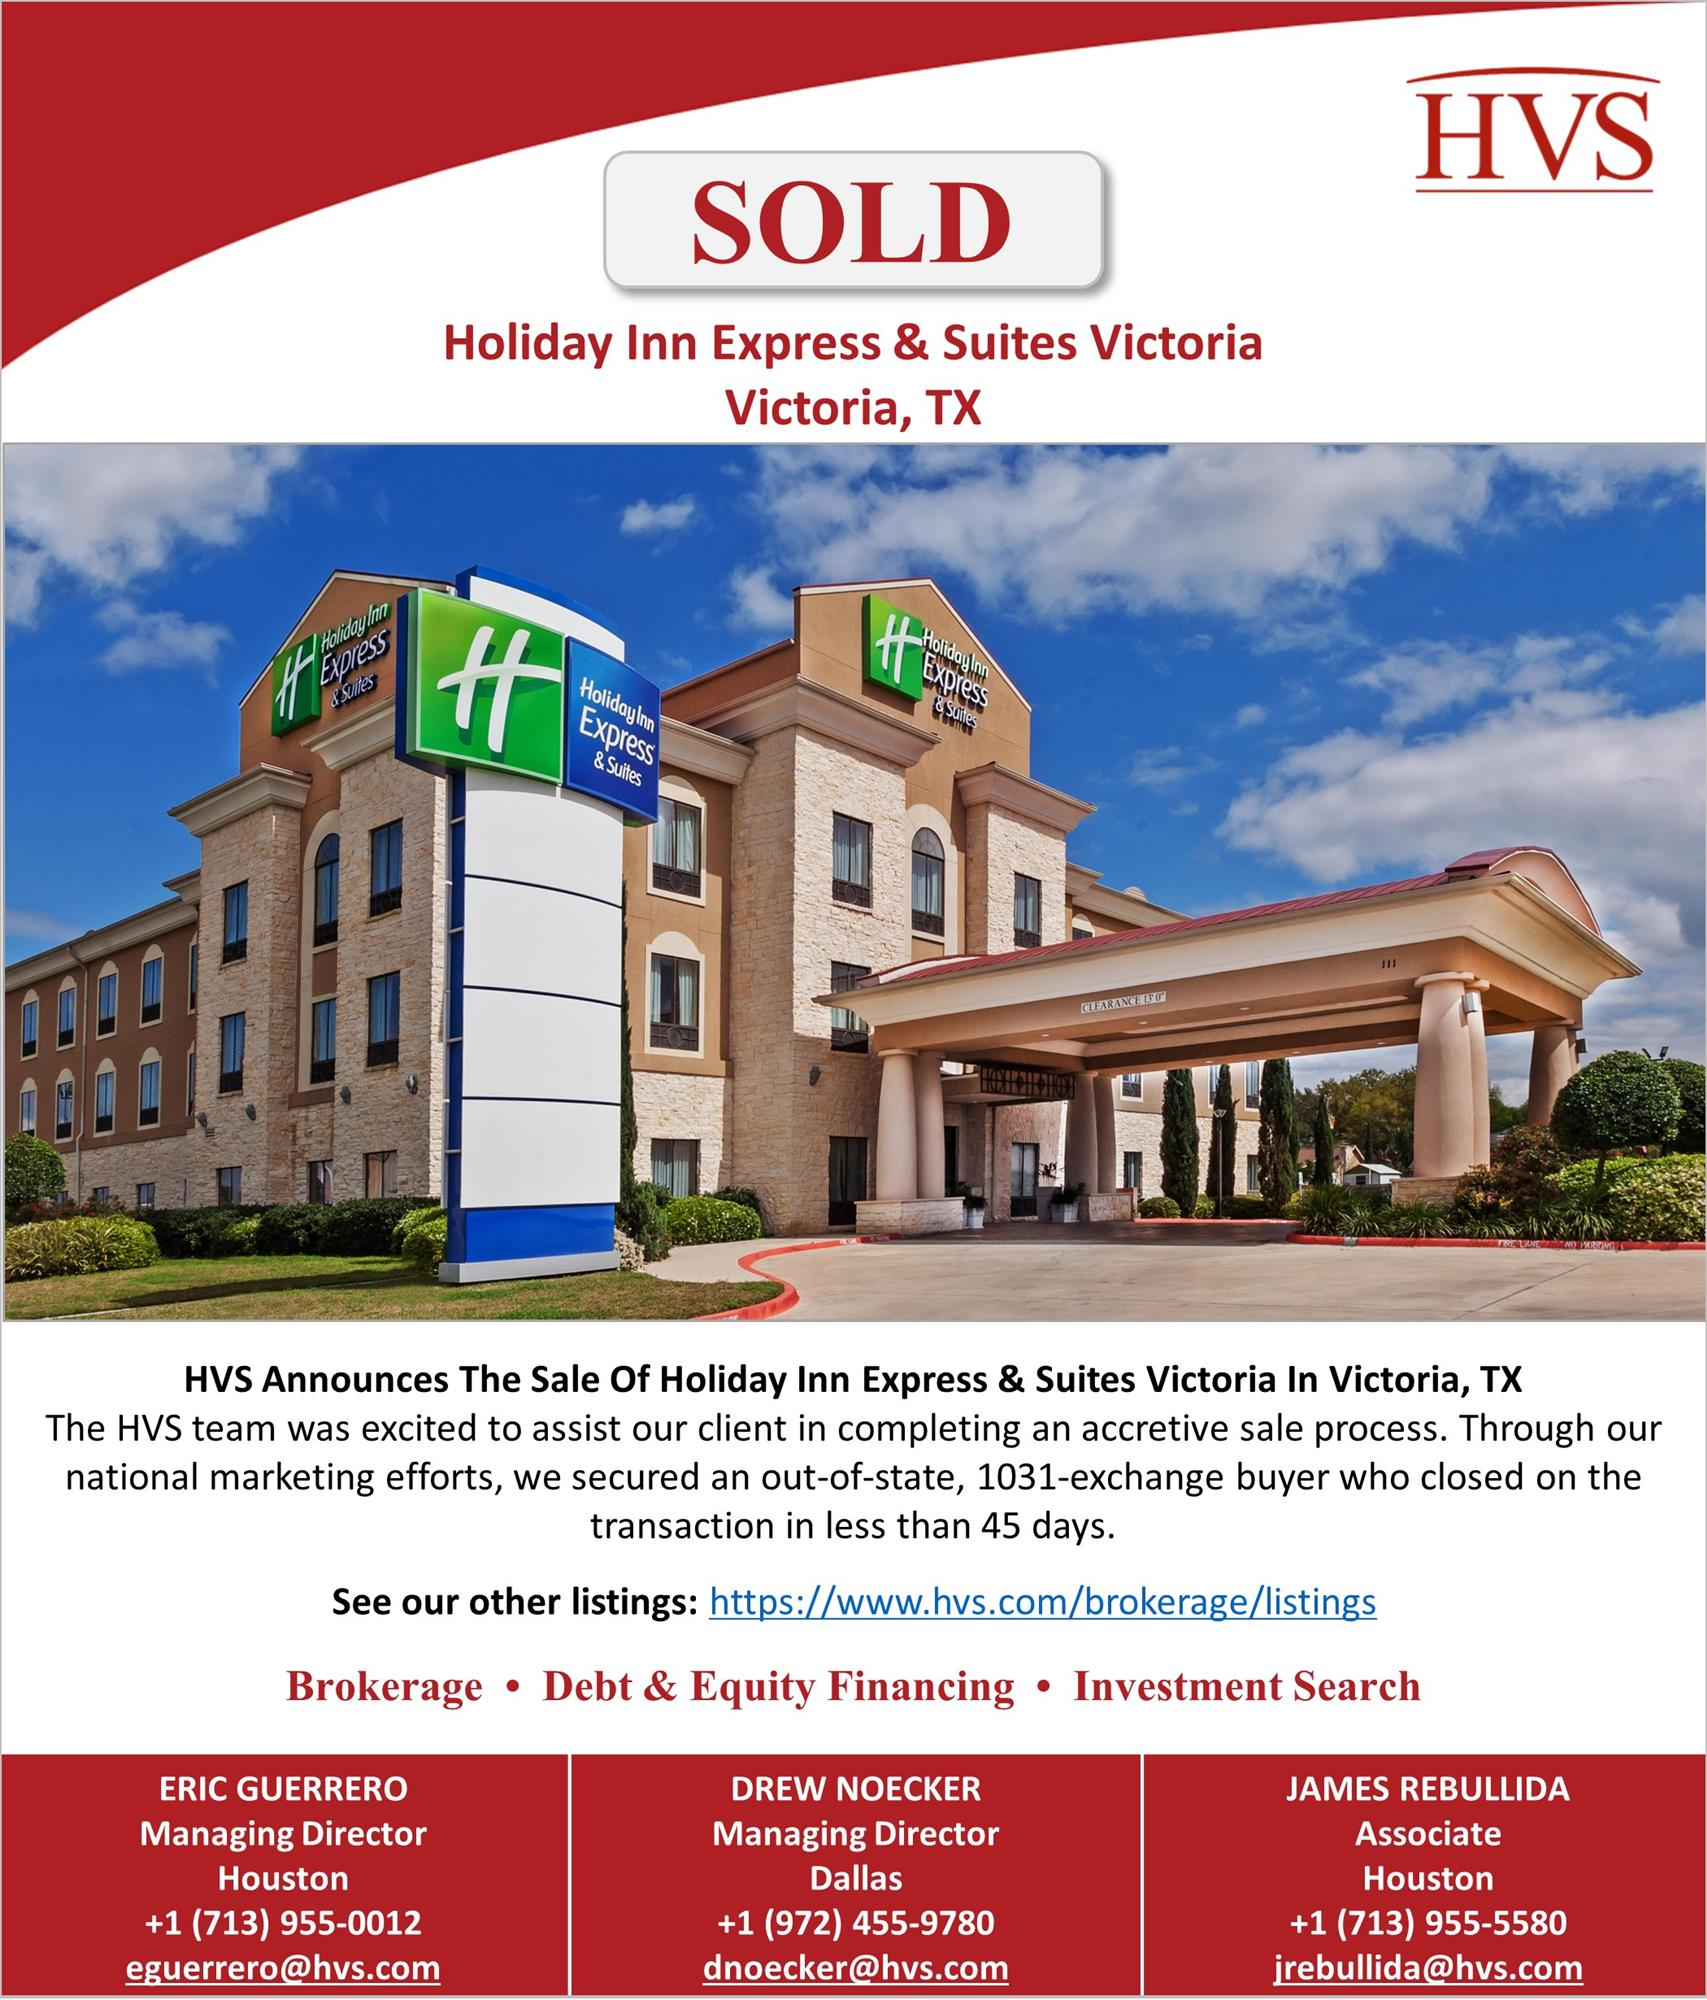 HVS | HVS Brokerage & Advisory Announces Sale of Holiday Inn Express